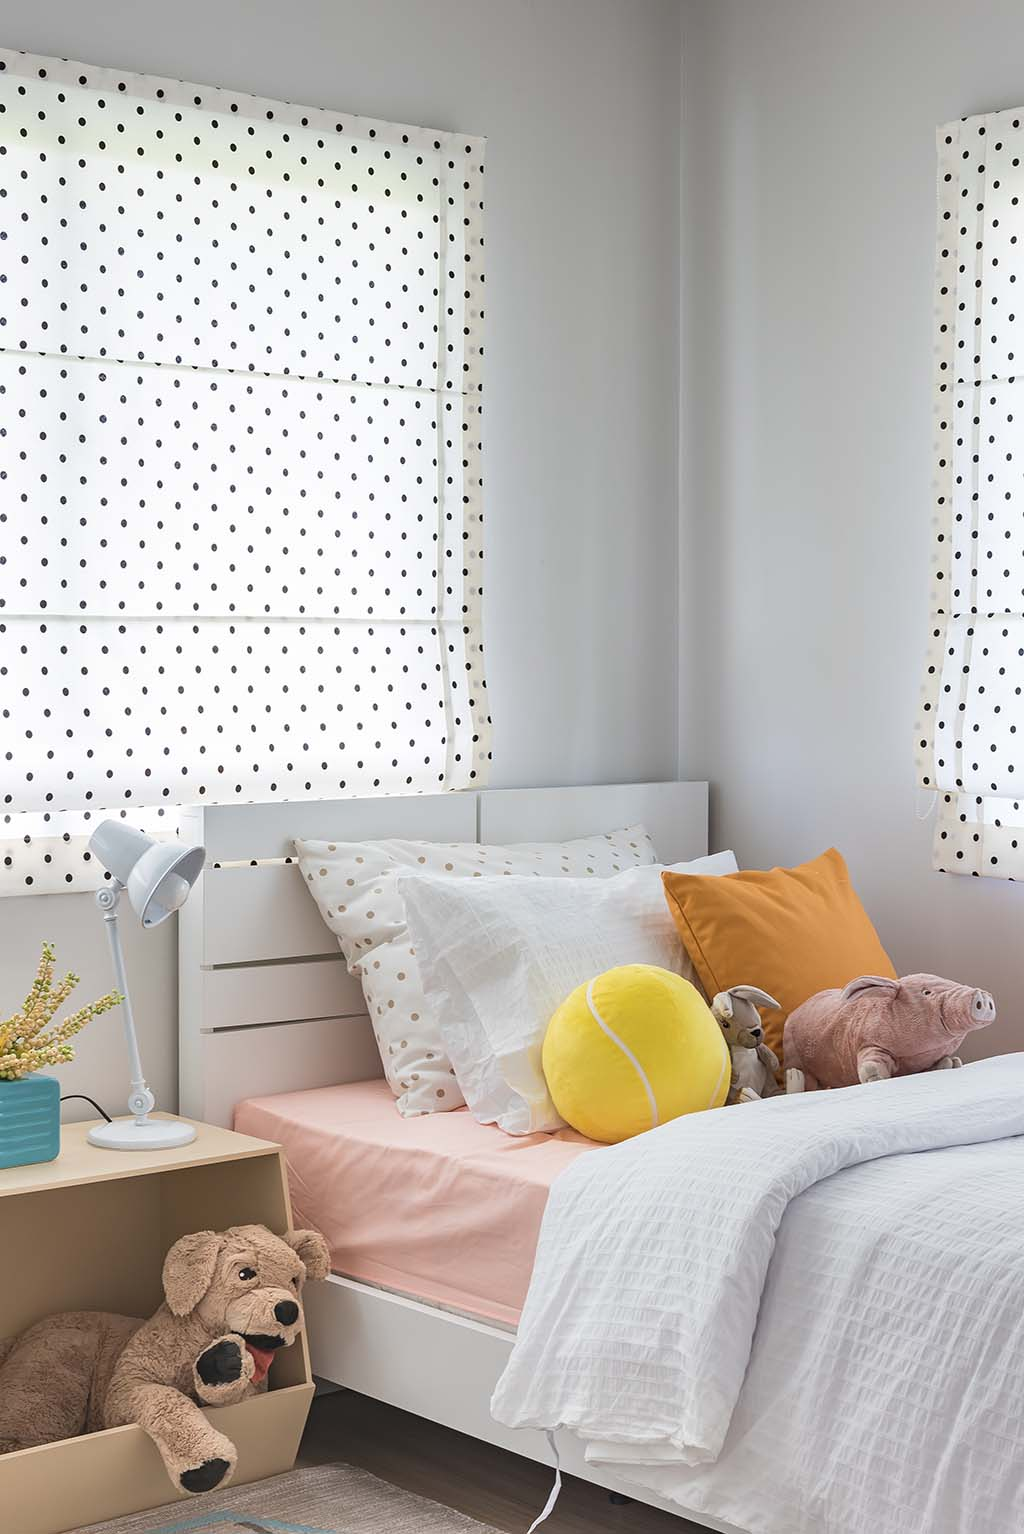 Gallery Roman Blinds Shade Matters